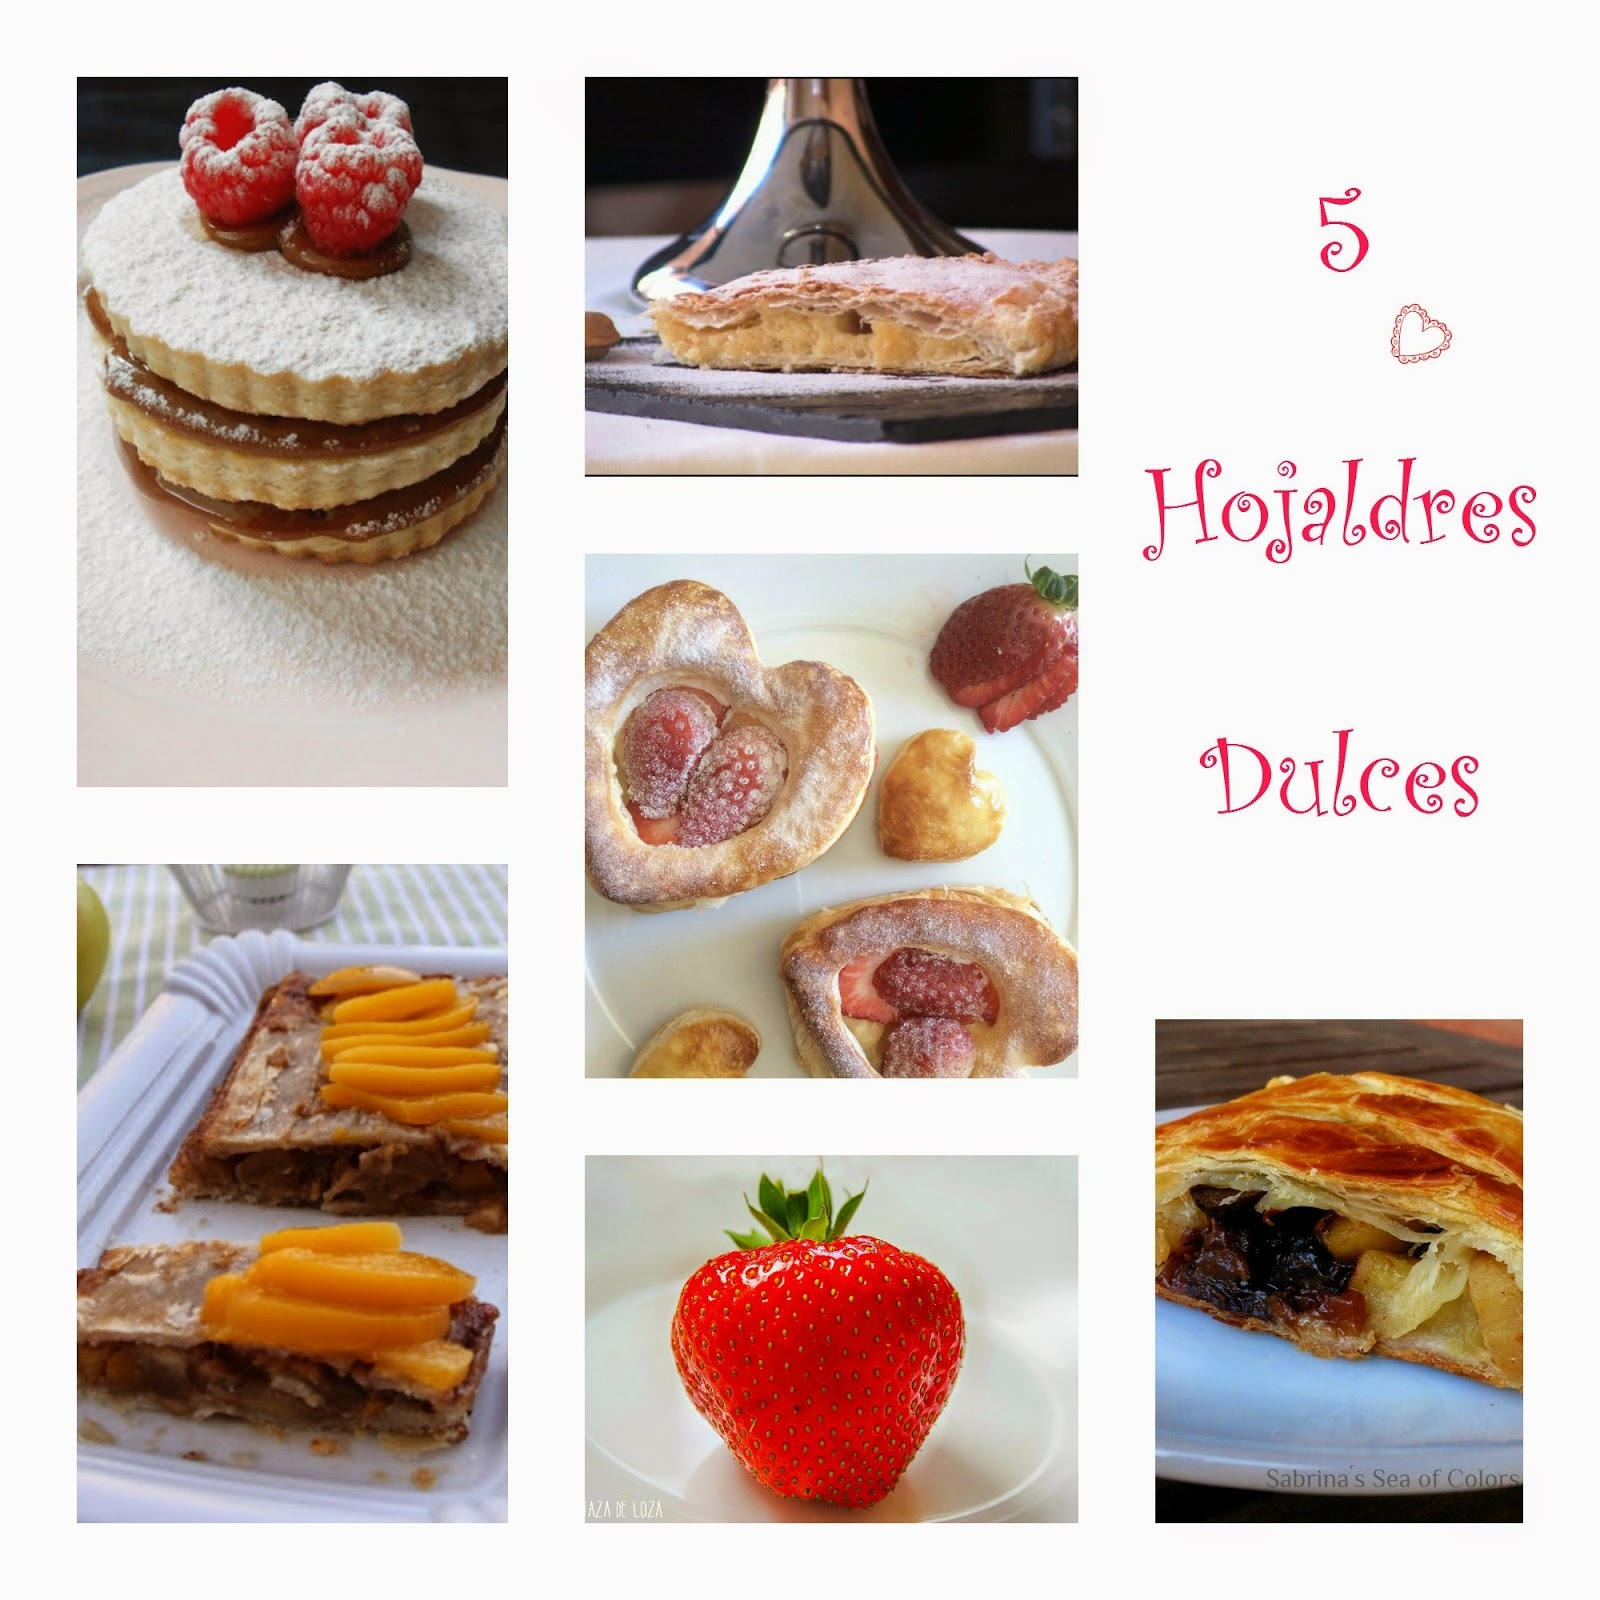 5 Hojaldres Dulces